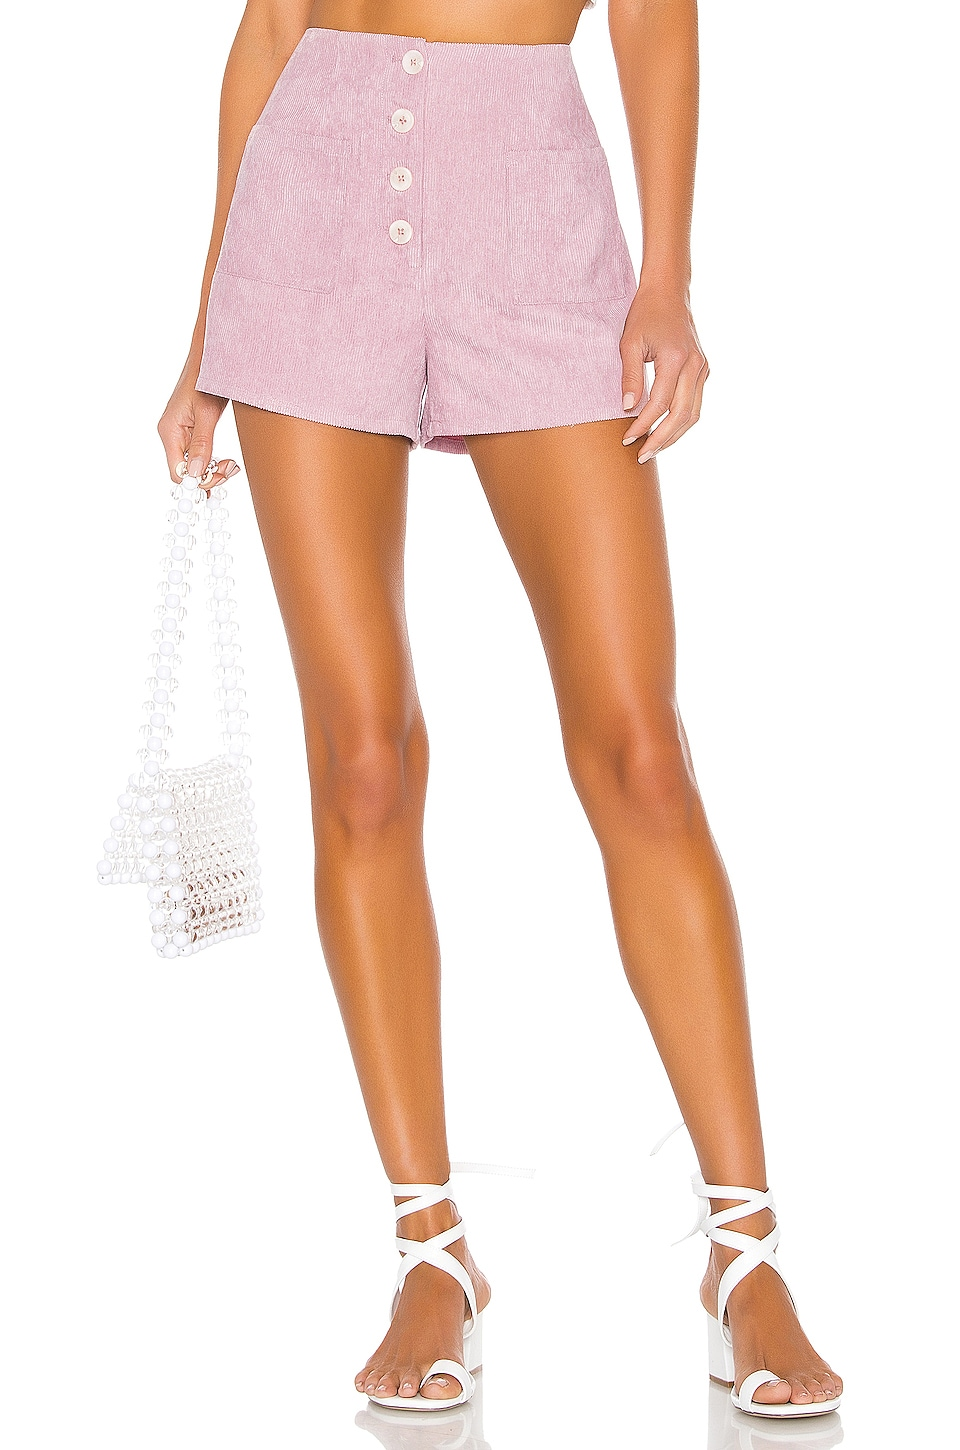 Lovers + Friends Sofia Shorts in Lilac